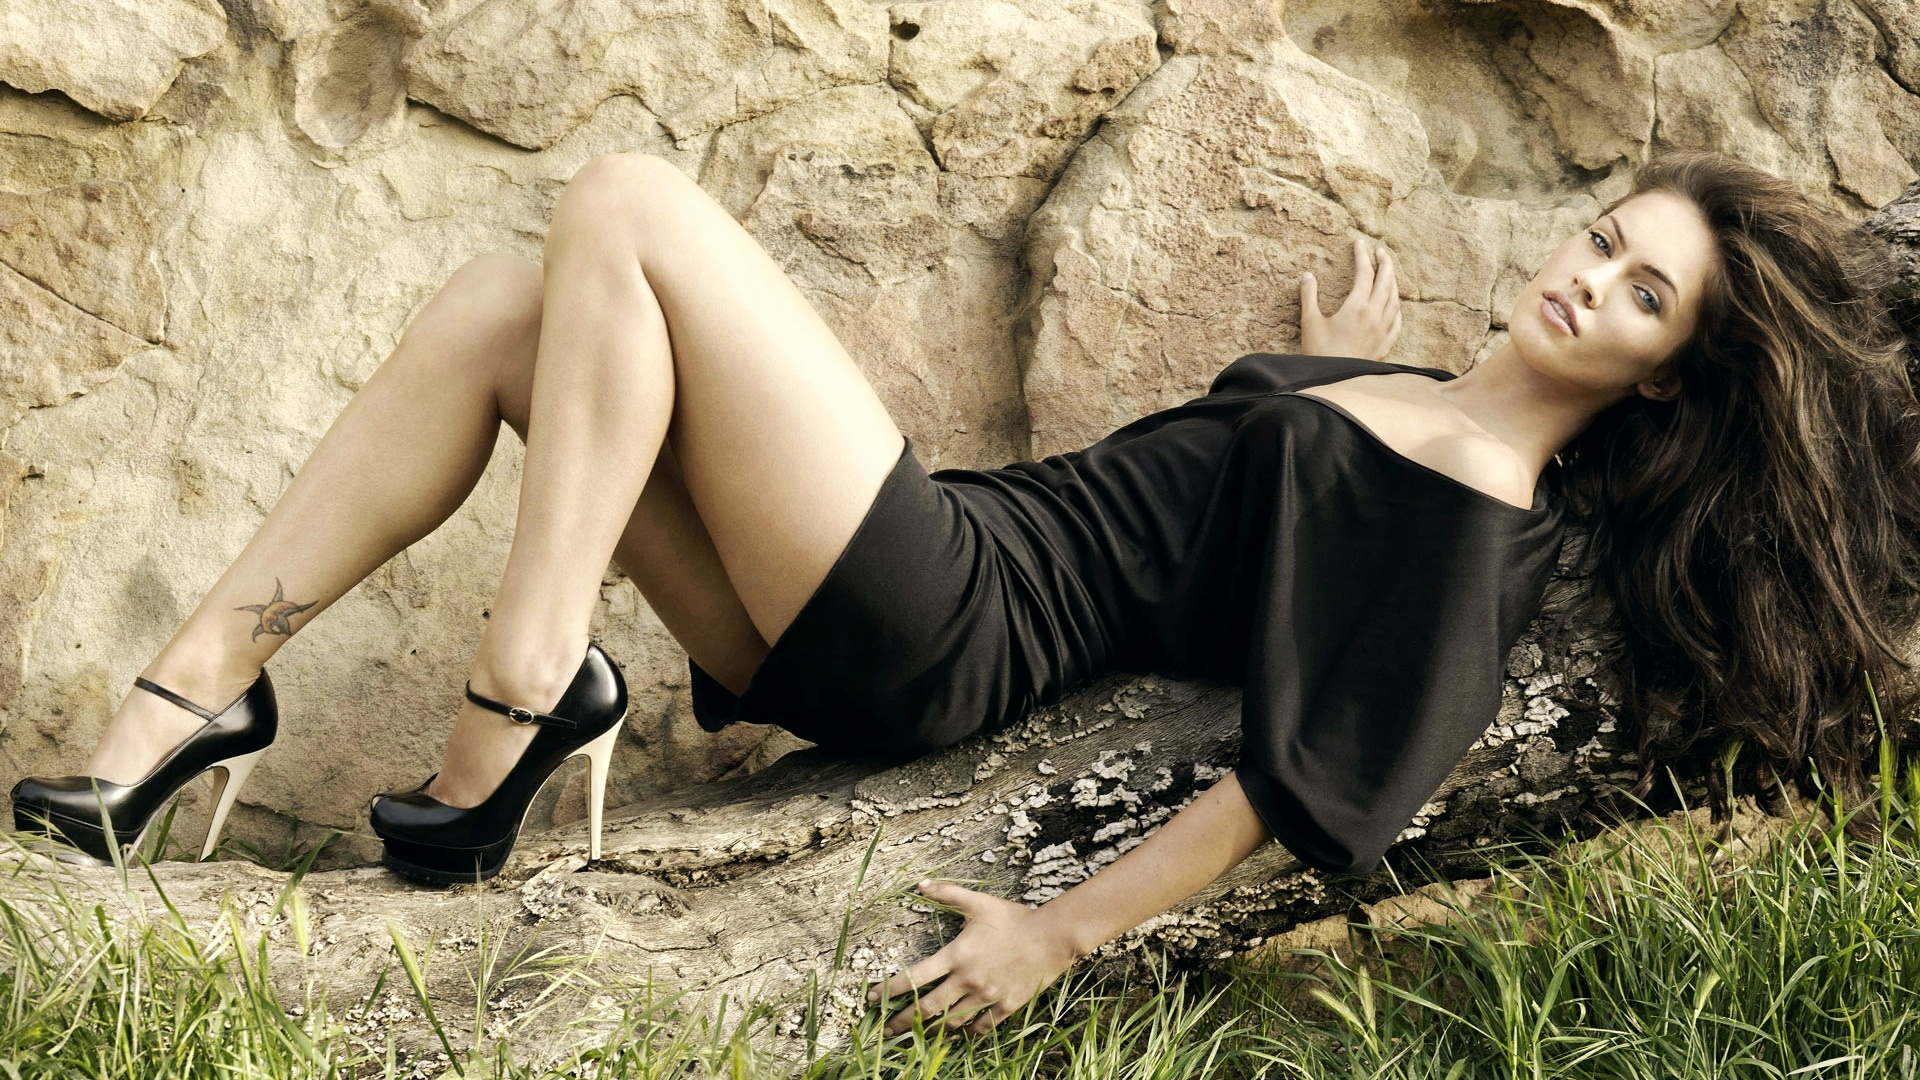 megan fox 2010 photoshoot wallpapers in jpg format for free download